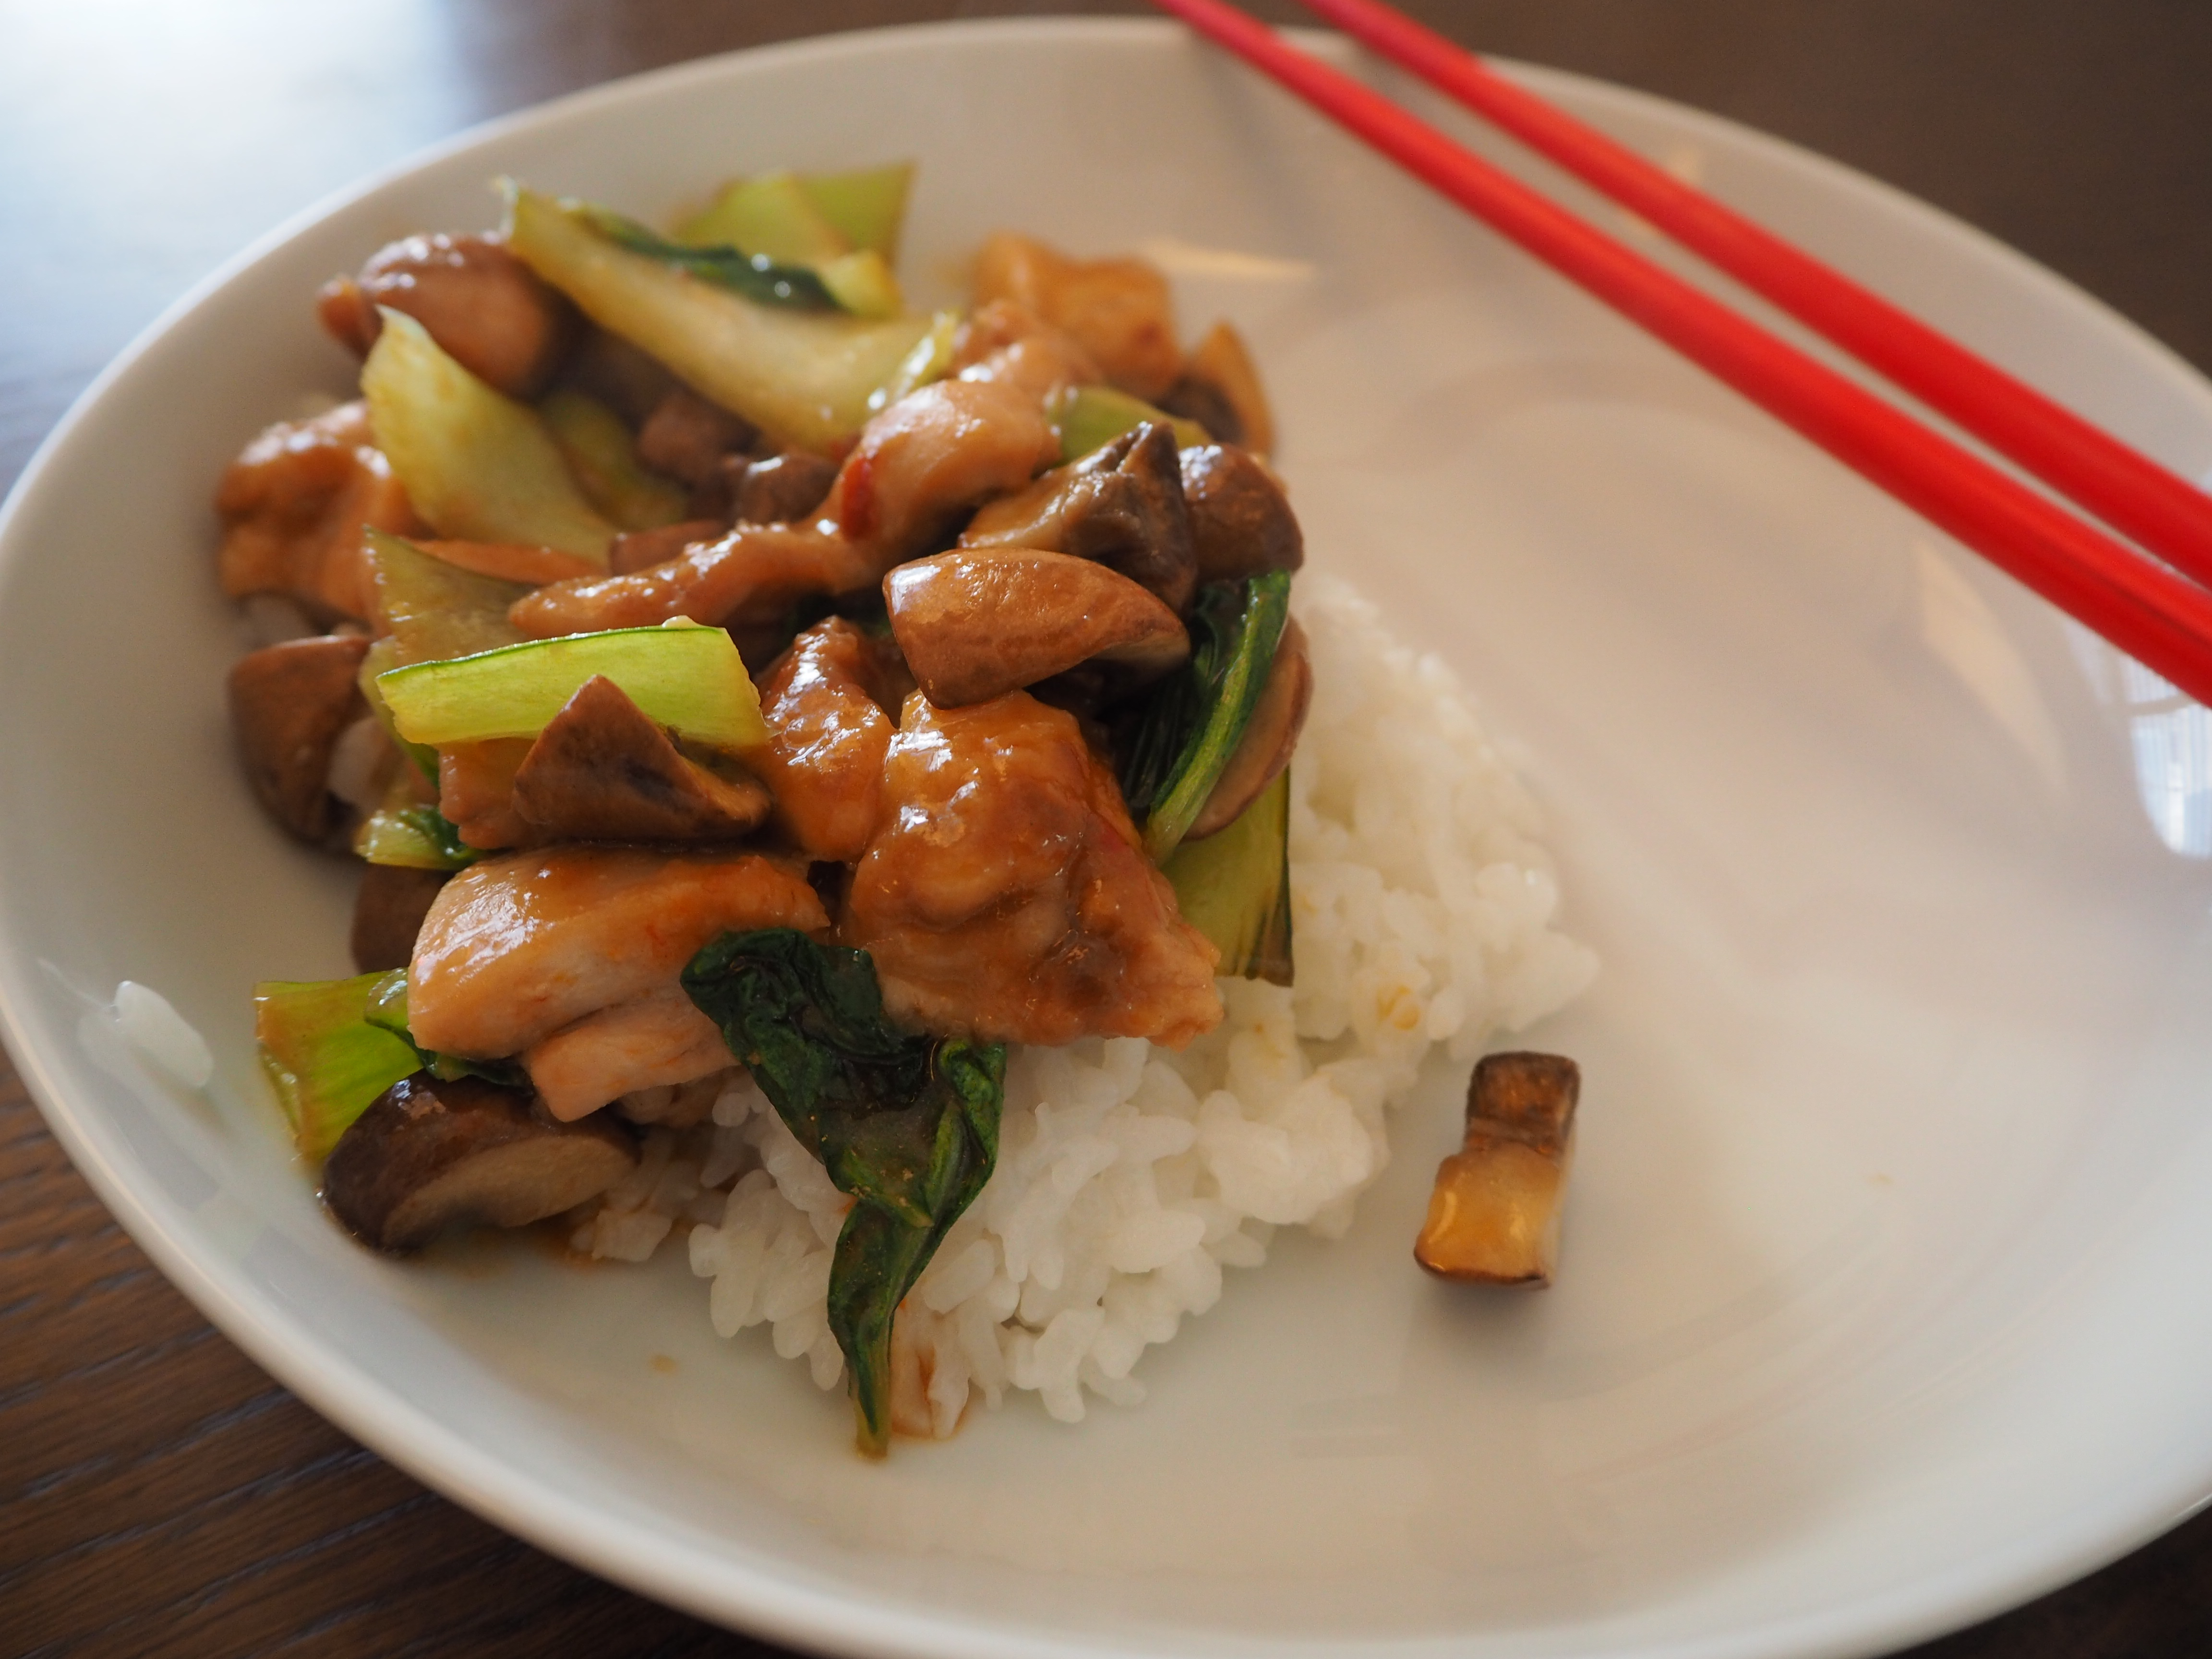 Stir-fried chicken and pak choi in oyster sauce | The Swindian